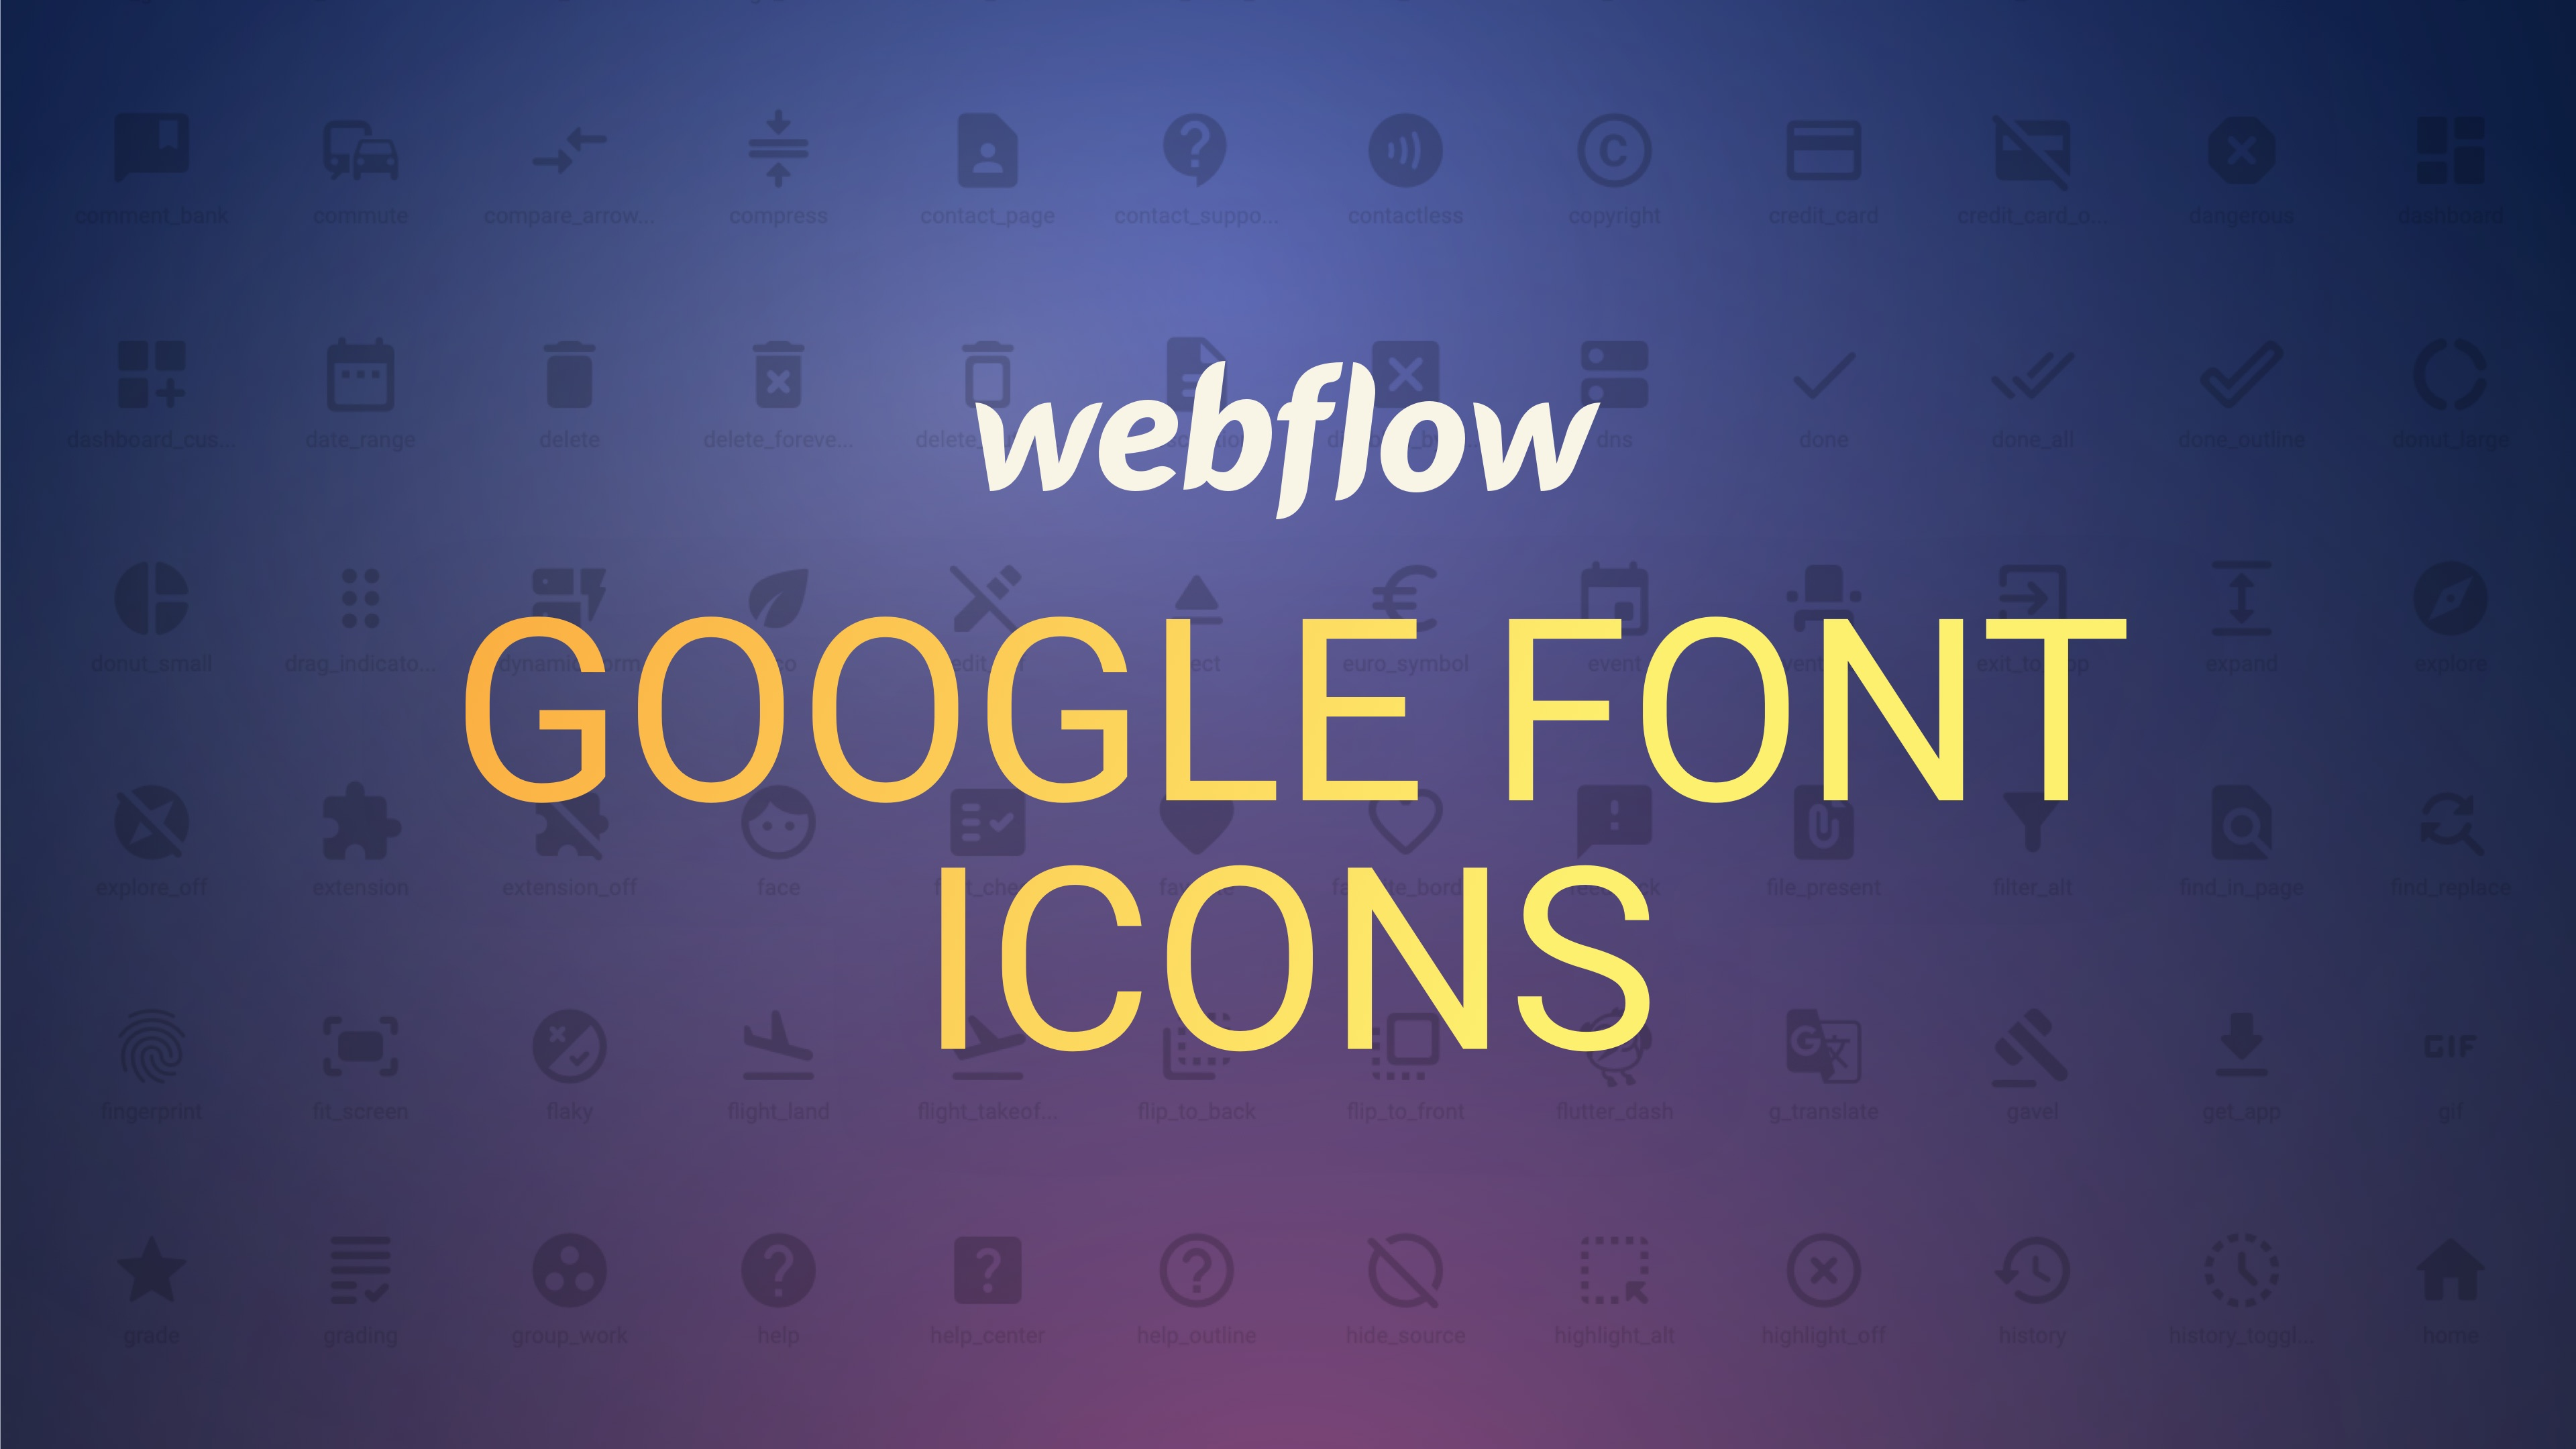 Icons in Webflow mit Google Fonts einbinden